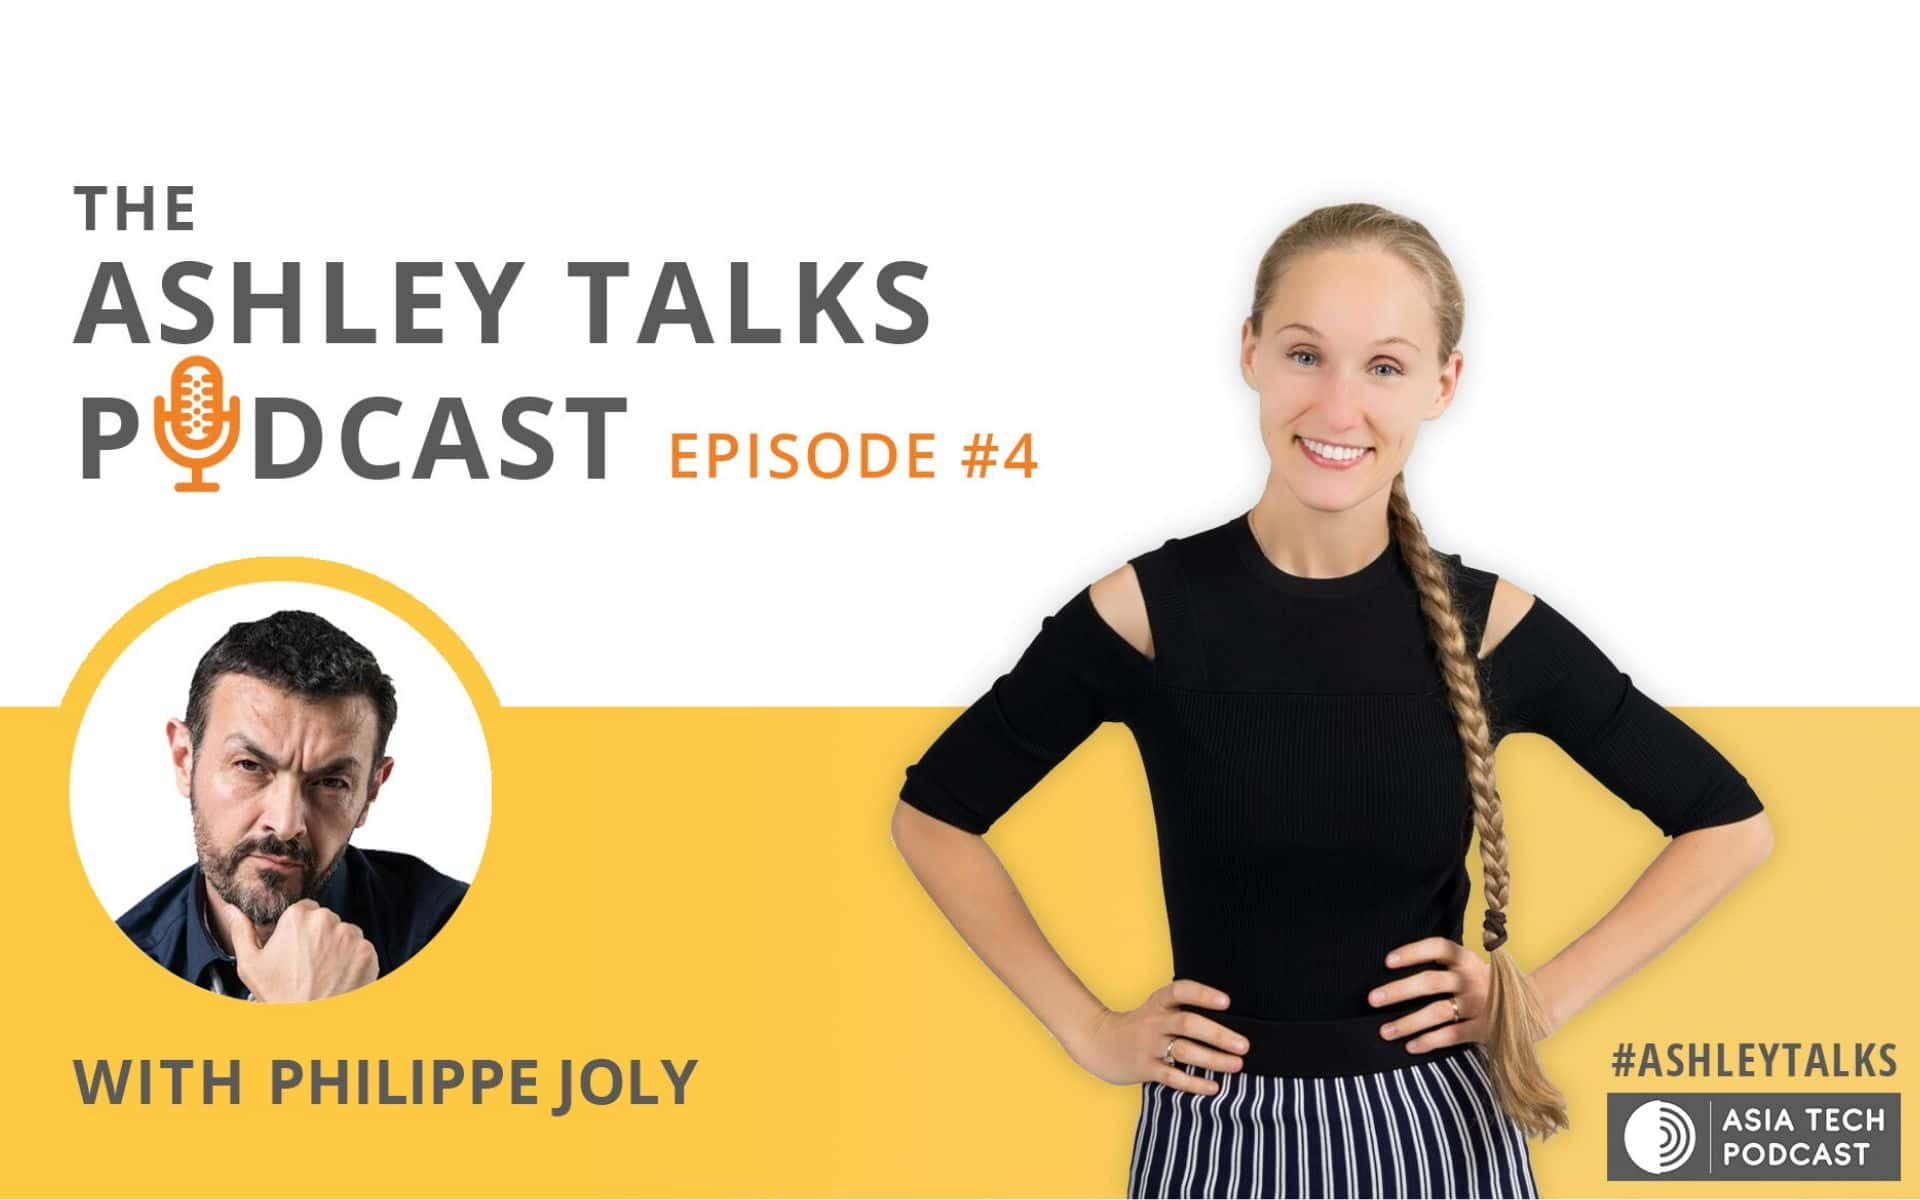 Philippe Joly on The Ashley Talks Podcast